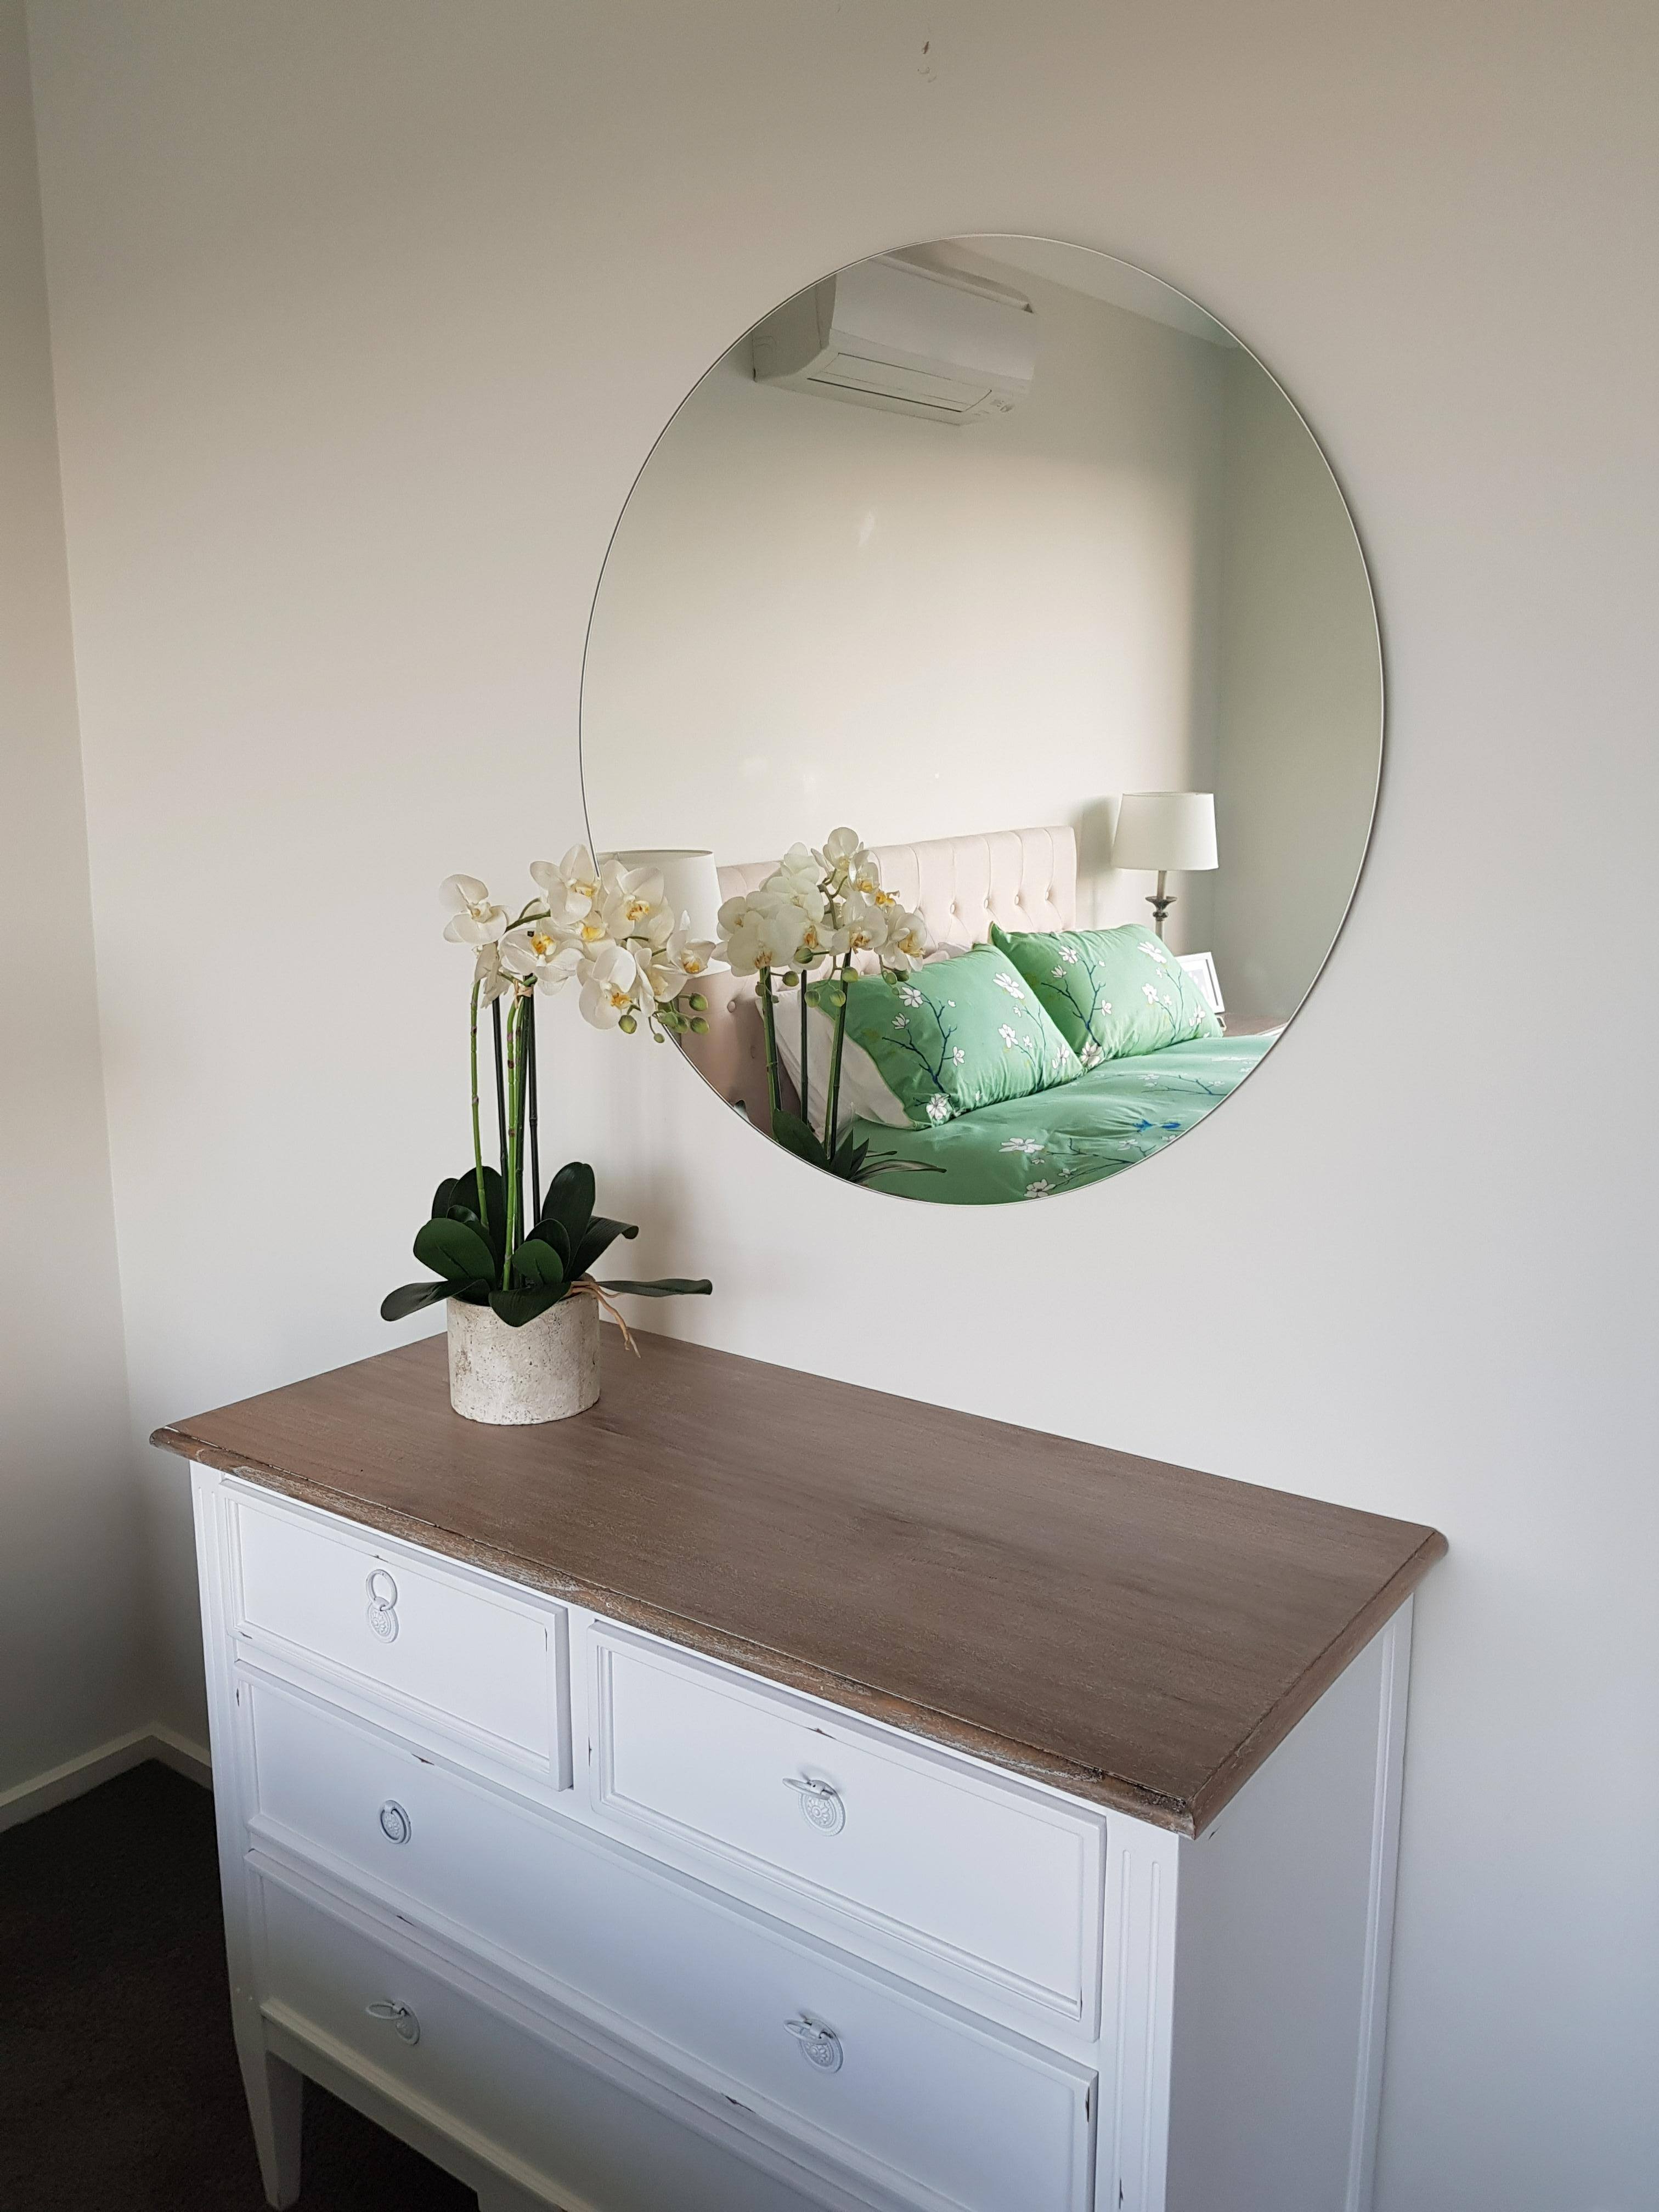 Most Recent Big Frameless Wall Mirrors Within Details About Extra Large Round Frameless Polished Edge Mirror Bathroom  Feature 100cm & 110cm (View 15 of 20)